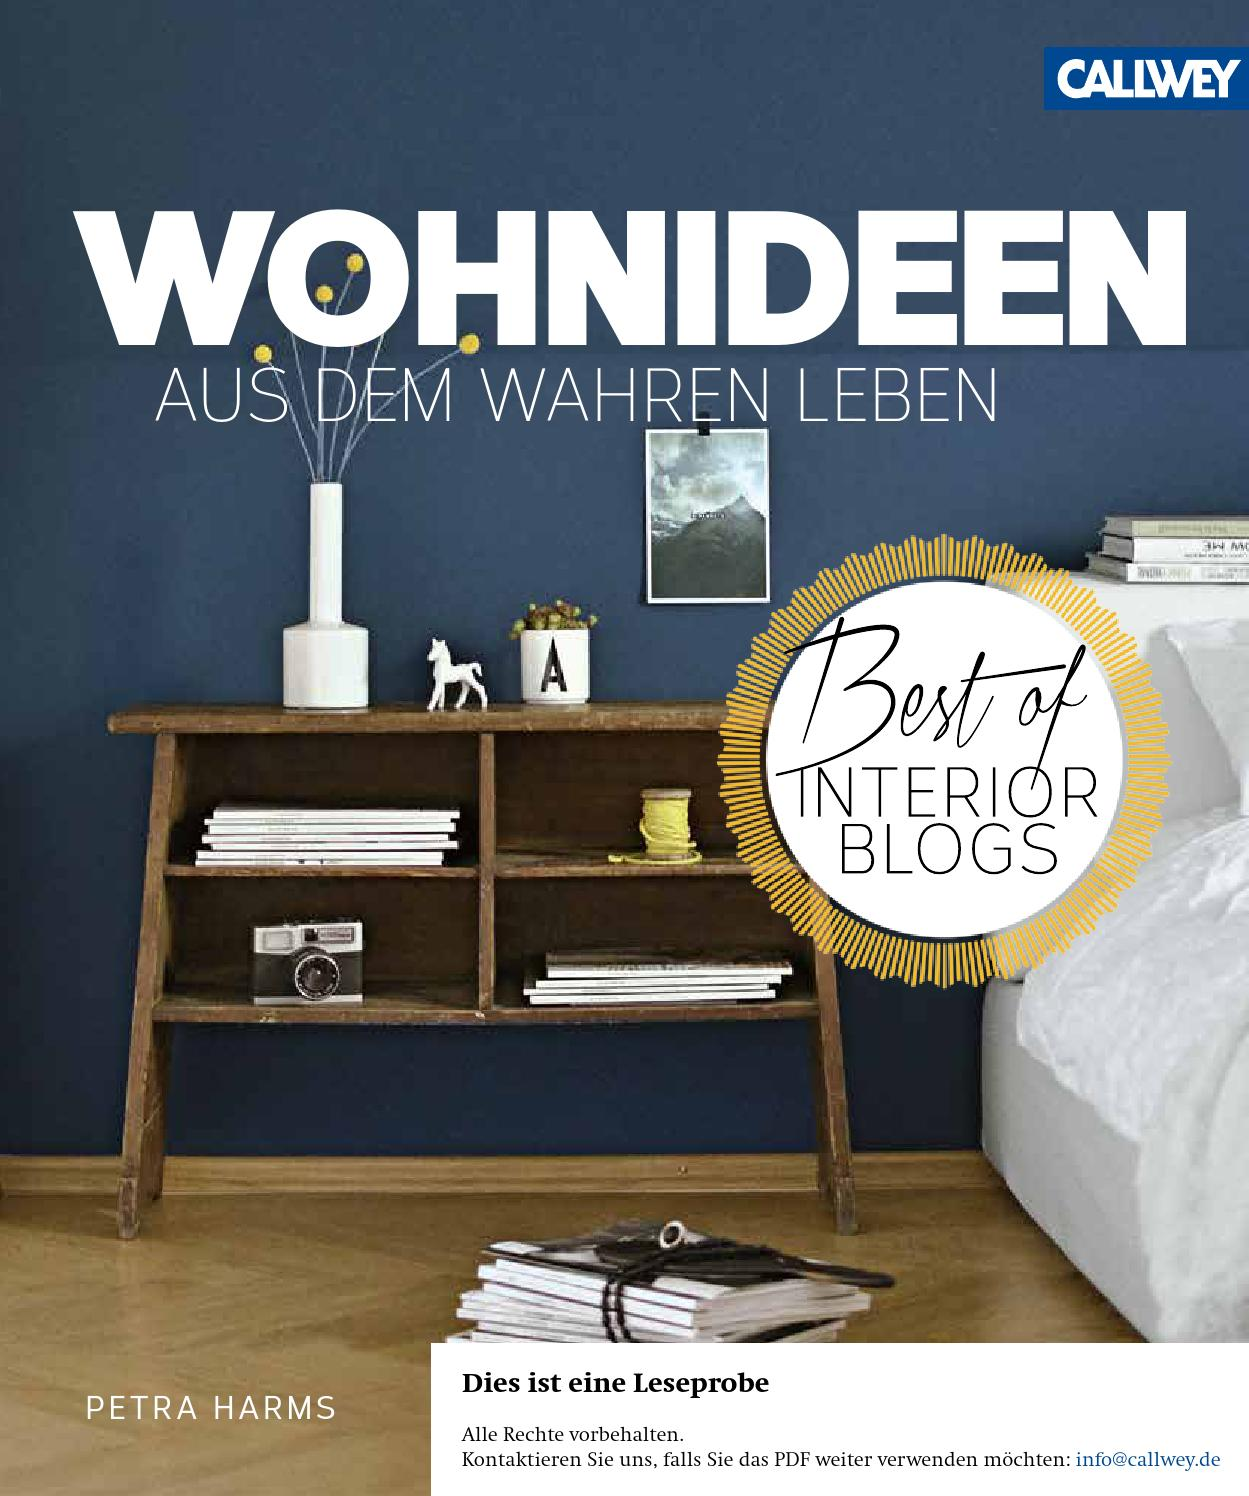 harms wohnideen aus dem wahren leben by georg d w callwey gmbh co kg issuu. Black Bedroom Furniture Sets. Home Design Ideas